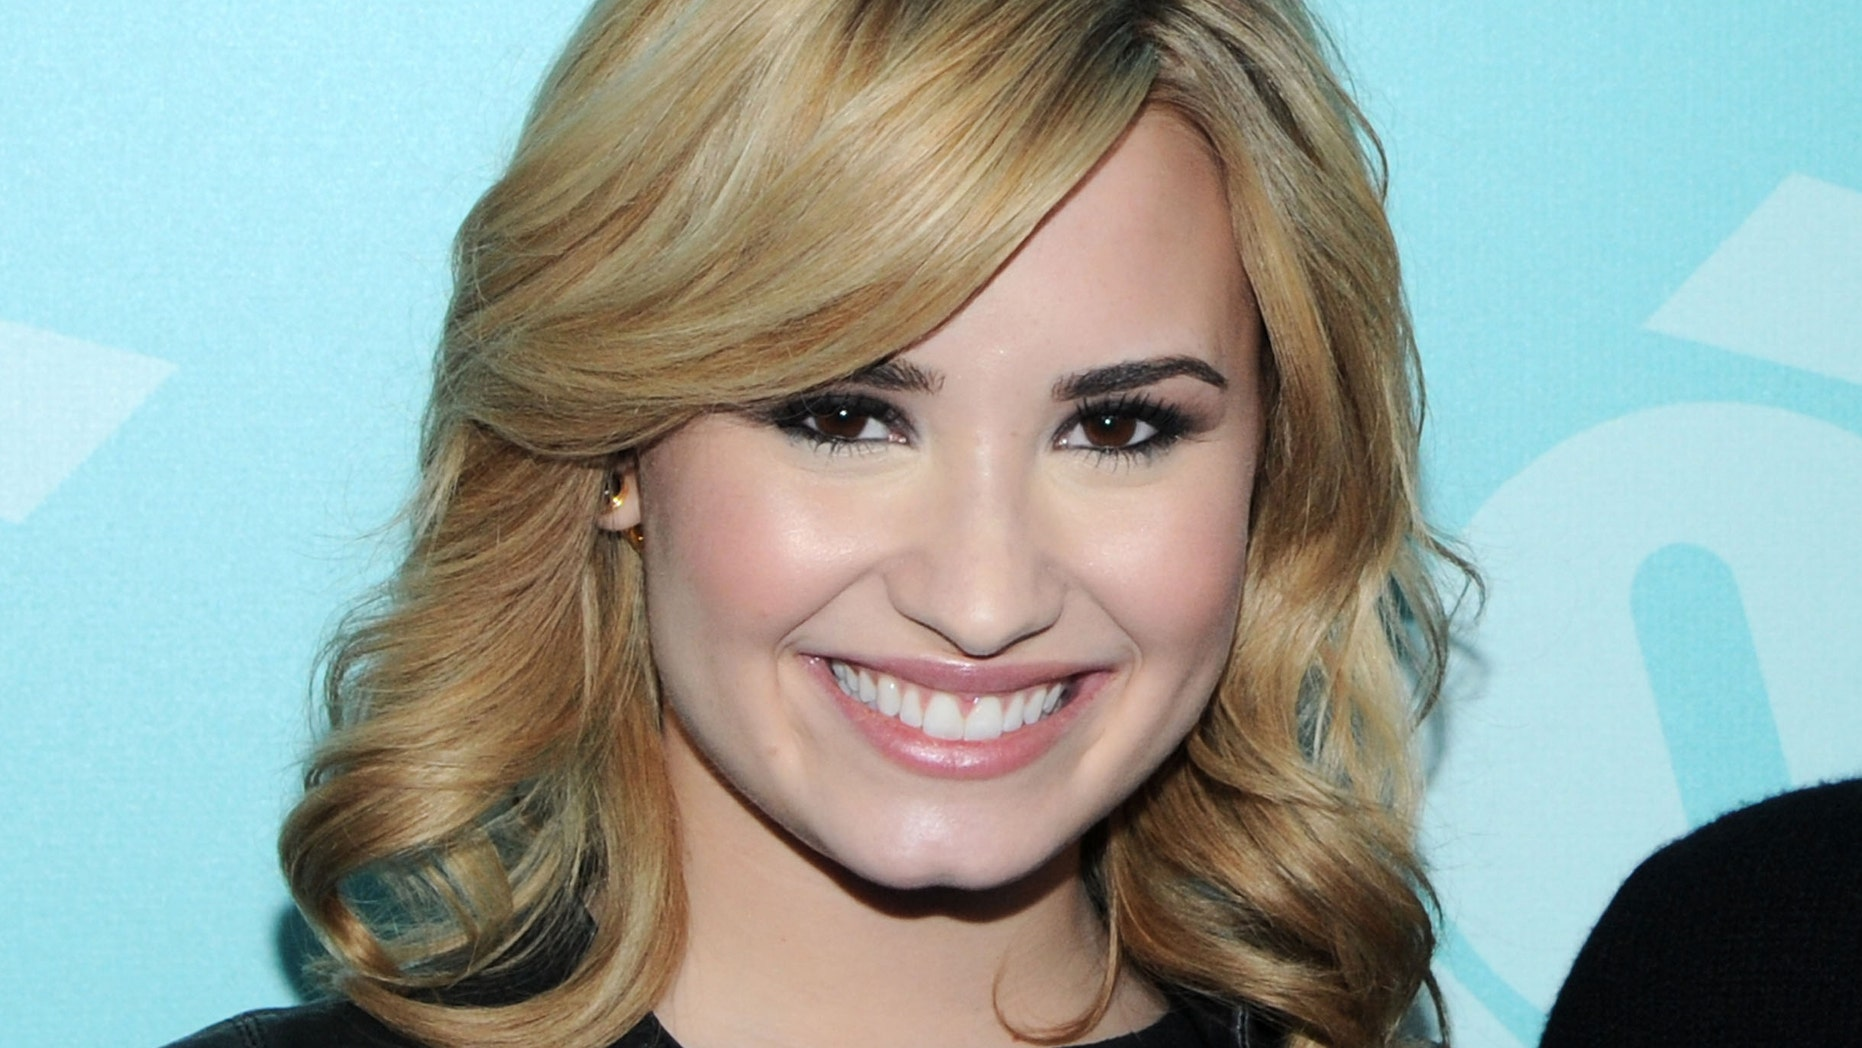 Demi Lovato attends FOX 2103 Programming Presentation Post-Party at Wollman Rink - Central Park on May 13, 2013 in New York City.